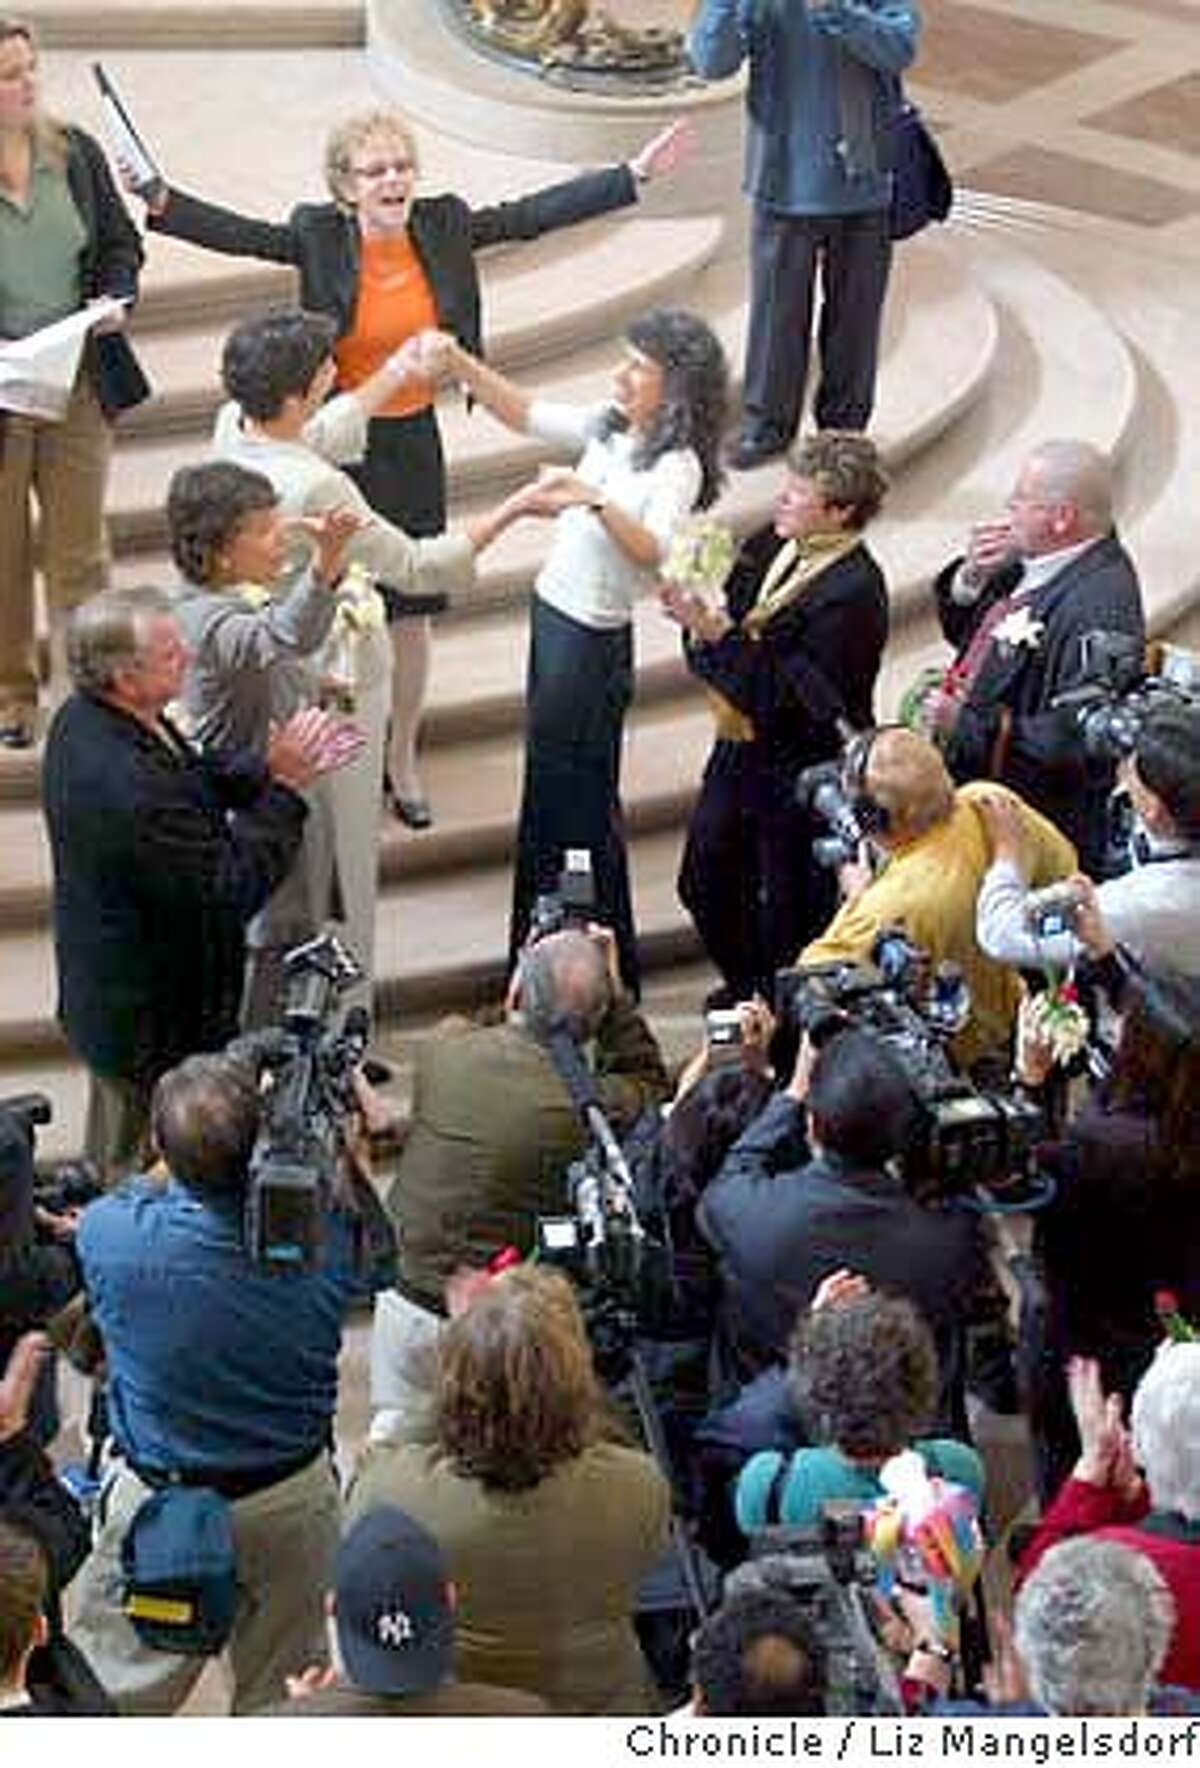 Event at San Francisco on 2/20/04. Corole Migden (arms up) presides over the wedding of Nanci Clarence, left, and Lidia Szajko in the City Hall Rotunda. This was just before her marriage was performed by Mayor Newsom behind closed doors. Same Sex marriages continue to be performed at City Hall. Liz Mangelsdorf/ The Chronicle